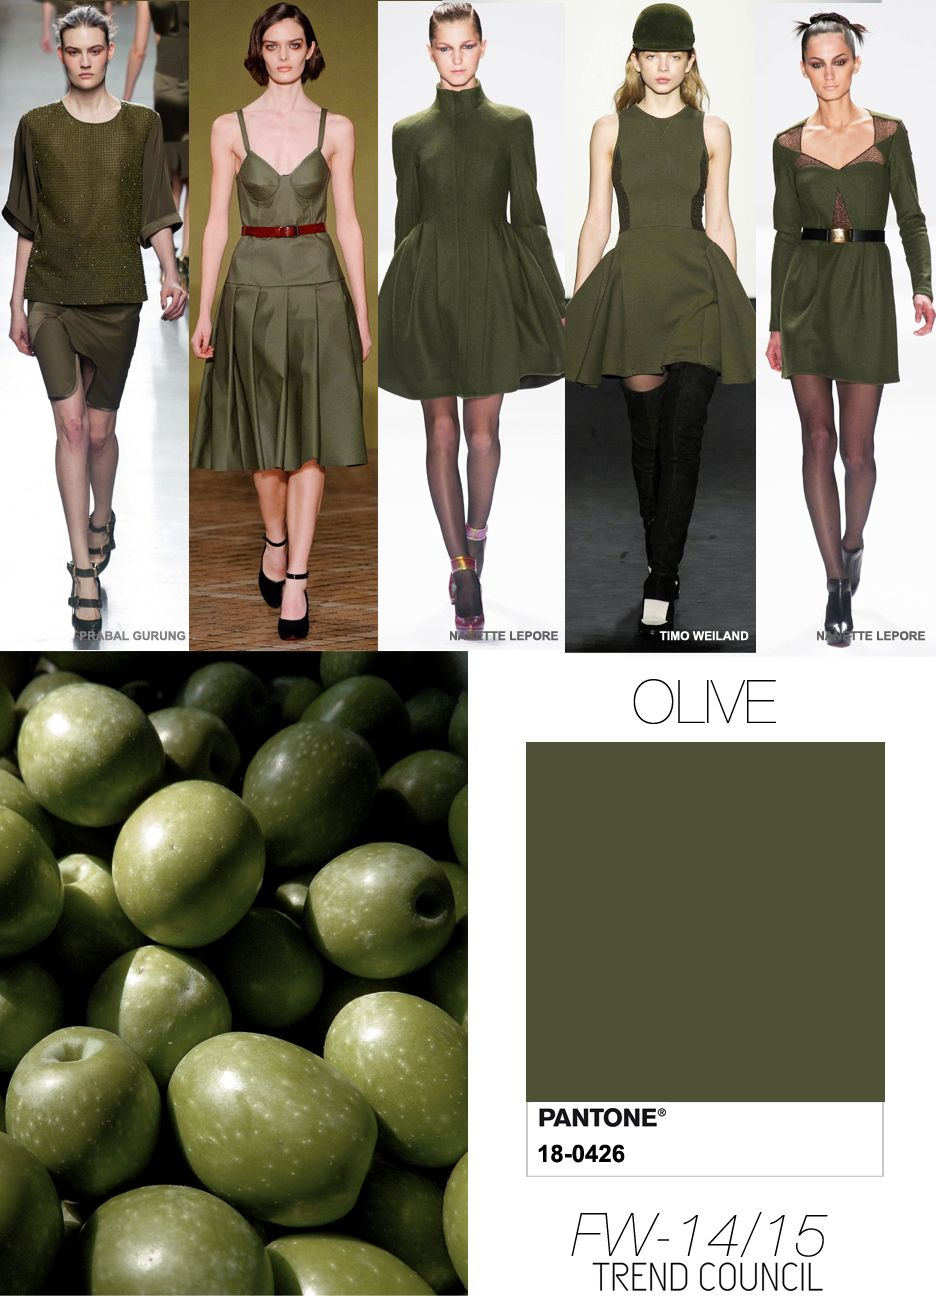 Olive - be careful, not everyone can carry olive well, it can be quite draining but great used as a neutral with warmer colours